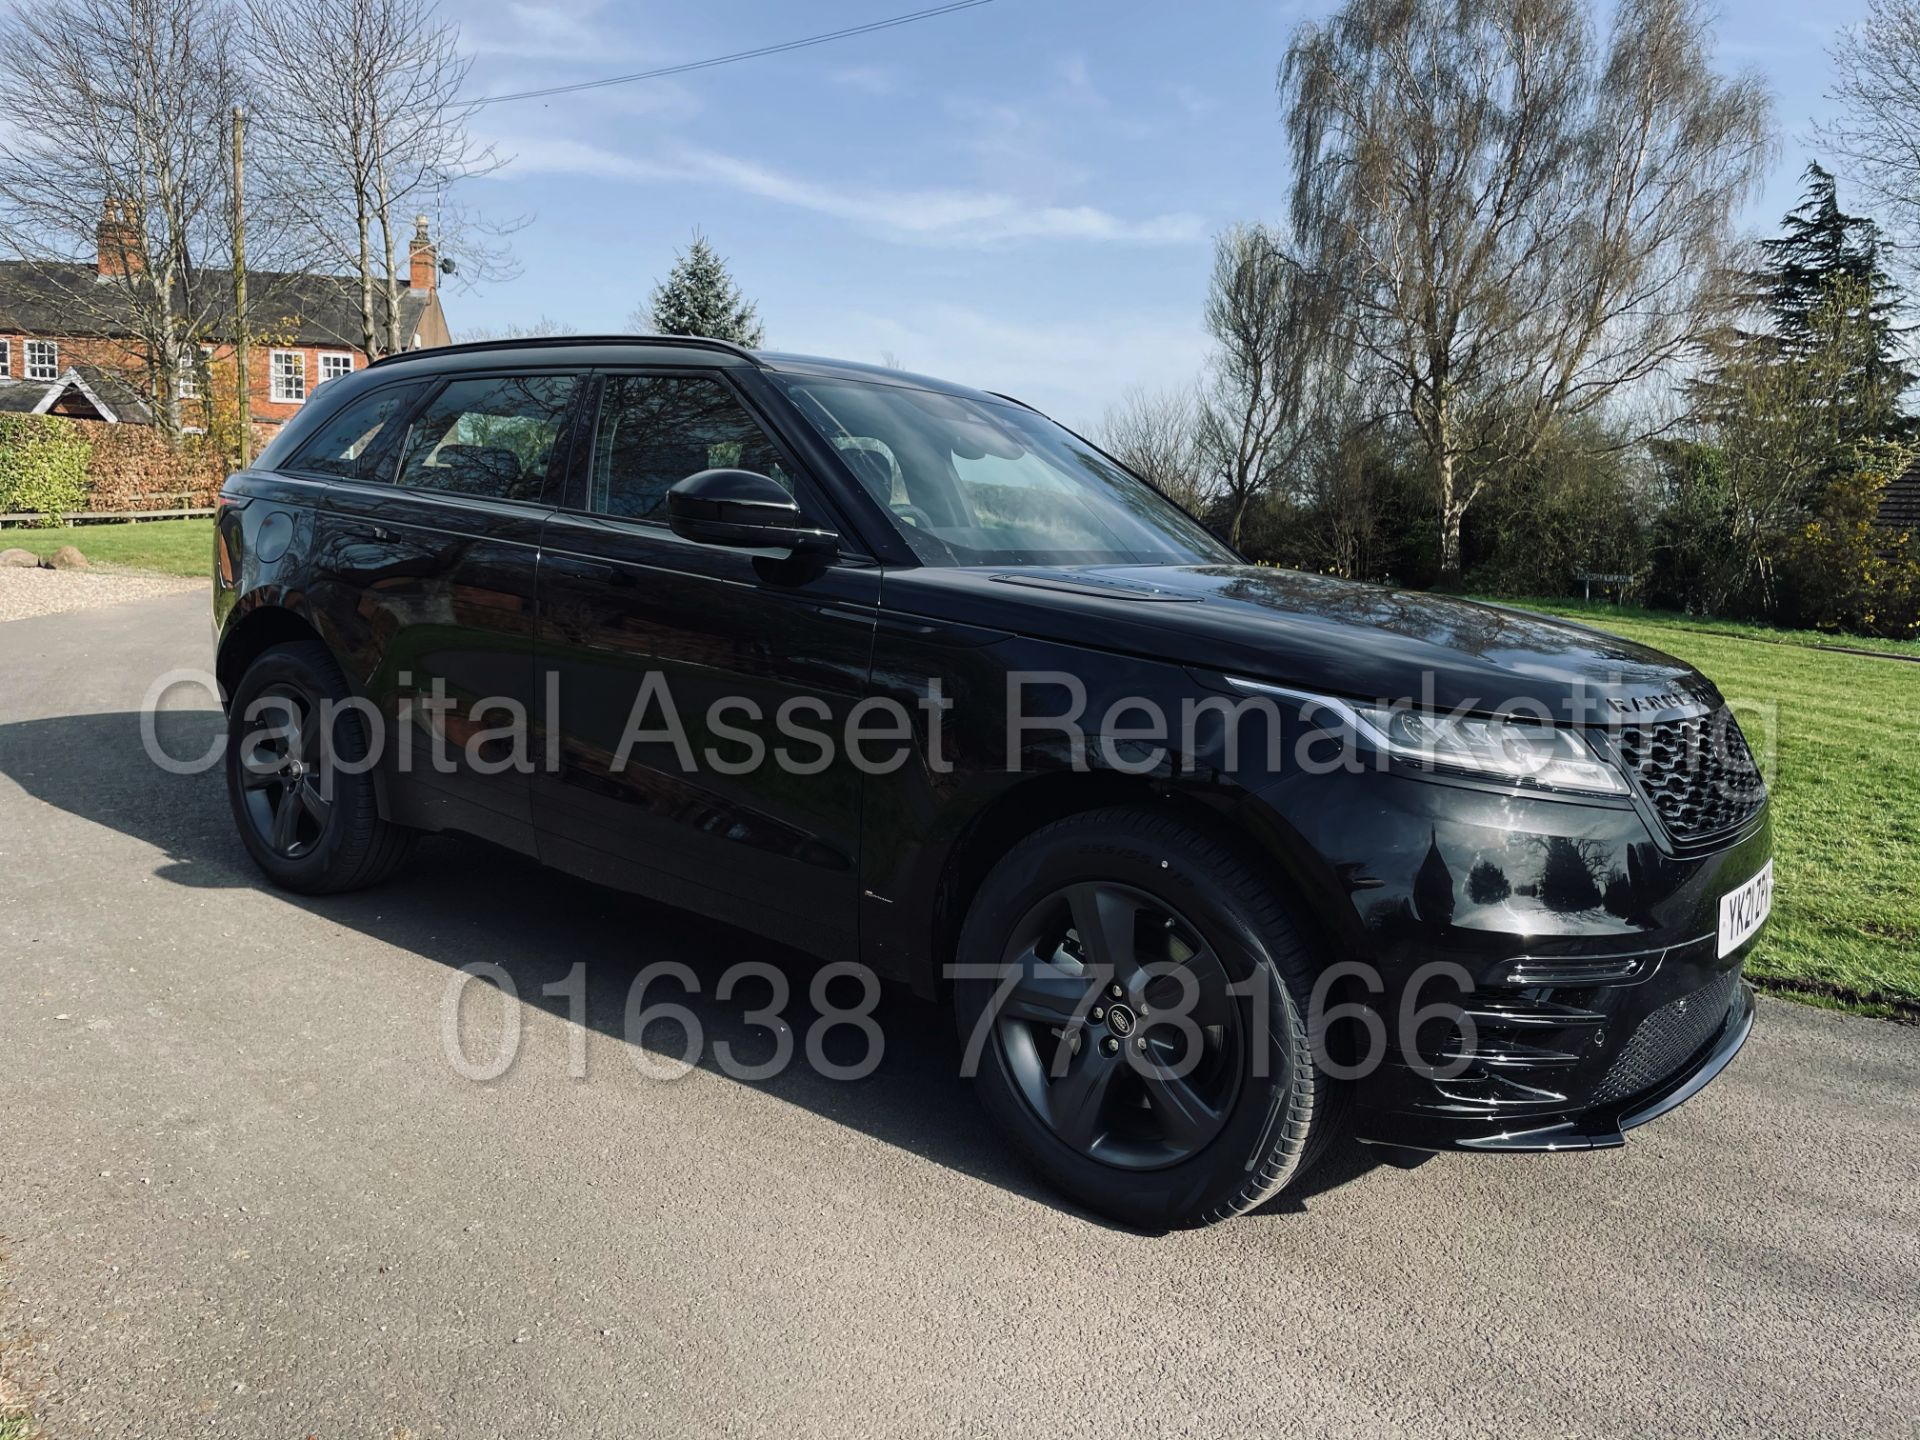 (On Sale) RANGE ROVER VELAR *R-DYNAMIC* SUV (2021) *8 SPEED AUTO - LEATHER* (DELIVERY MILES) - Image 2 of 50